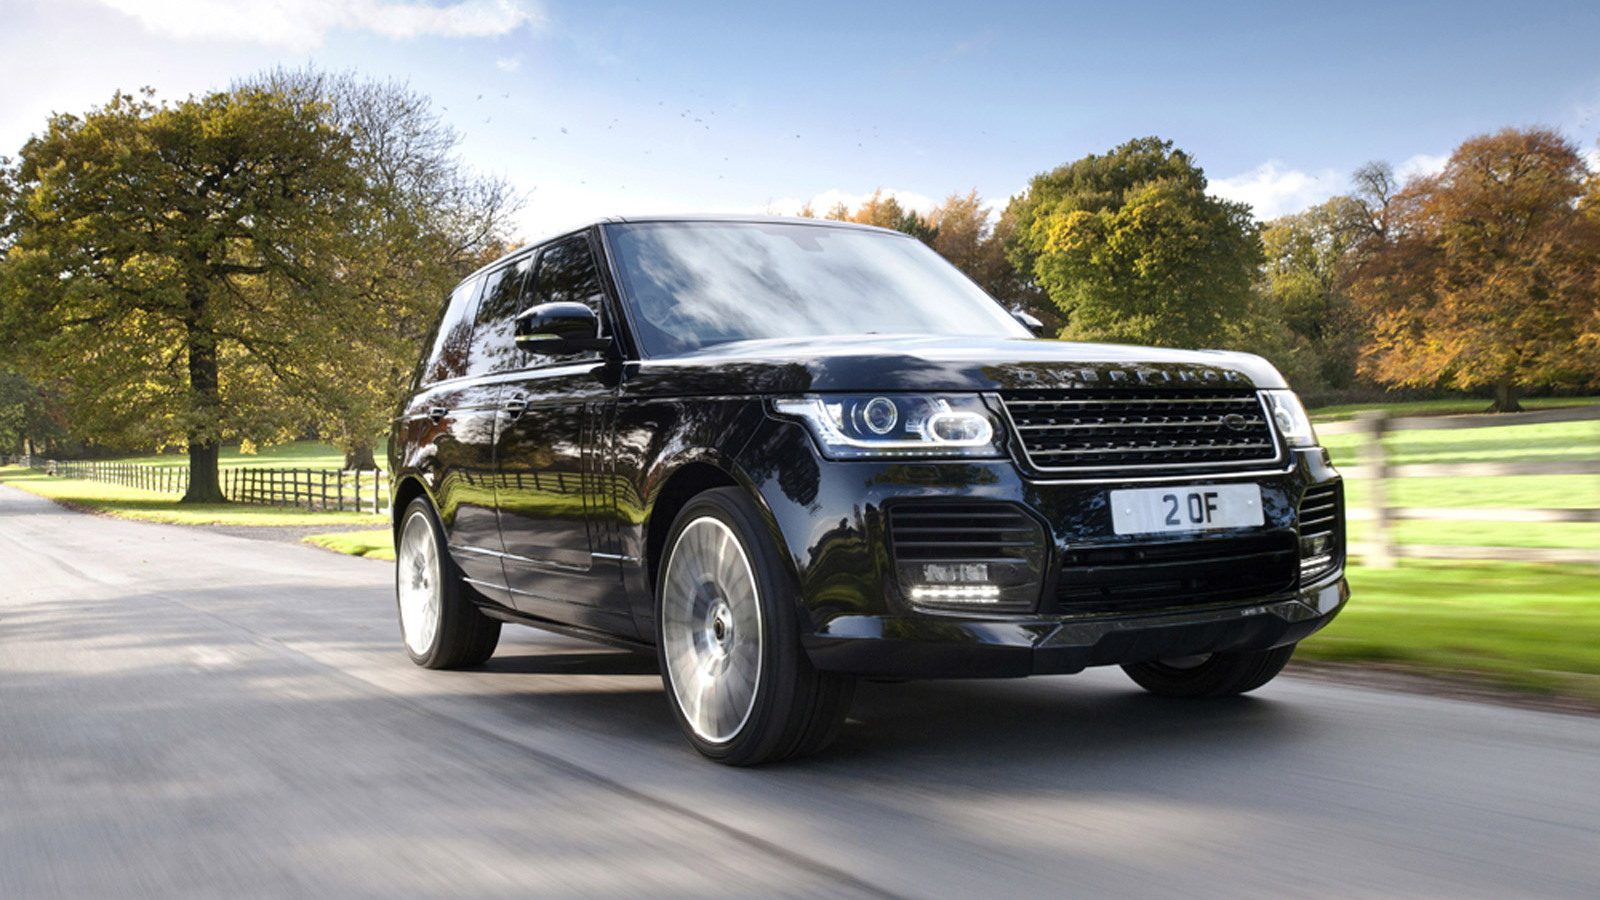 2014 Land Rover Range Rover by Overfinch